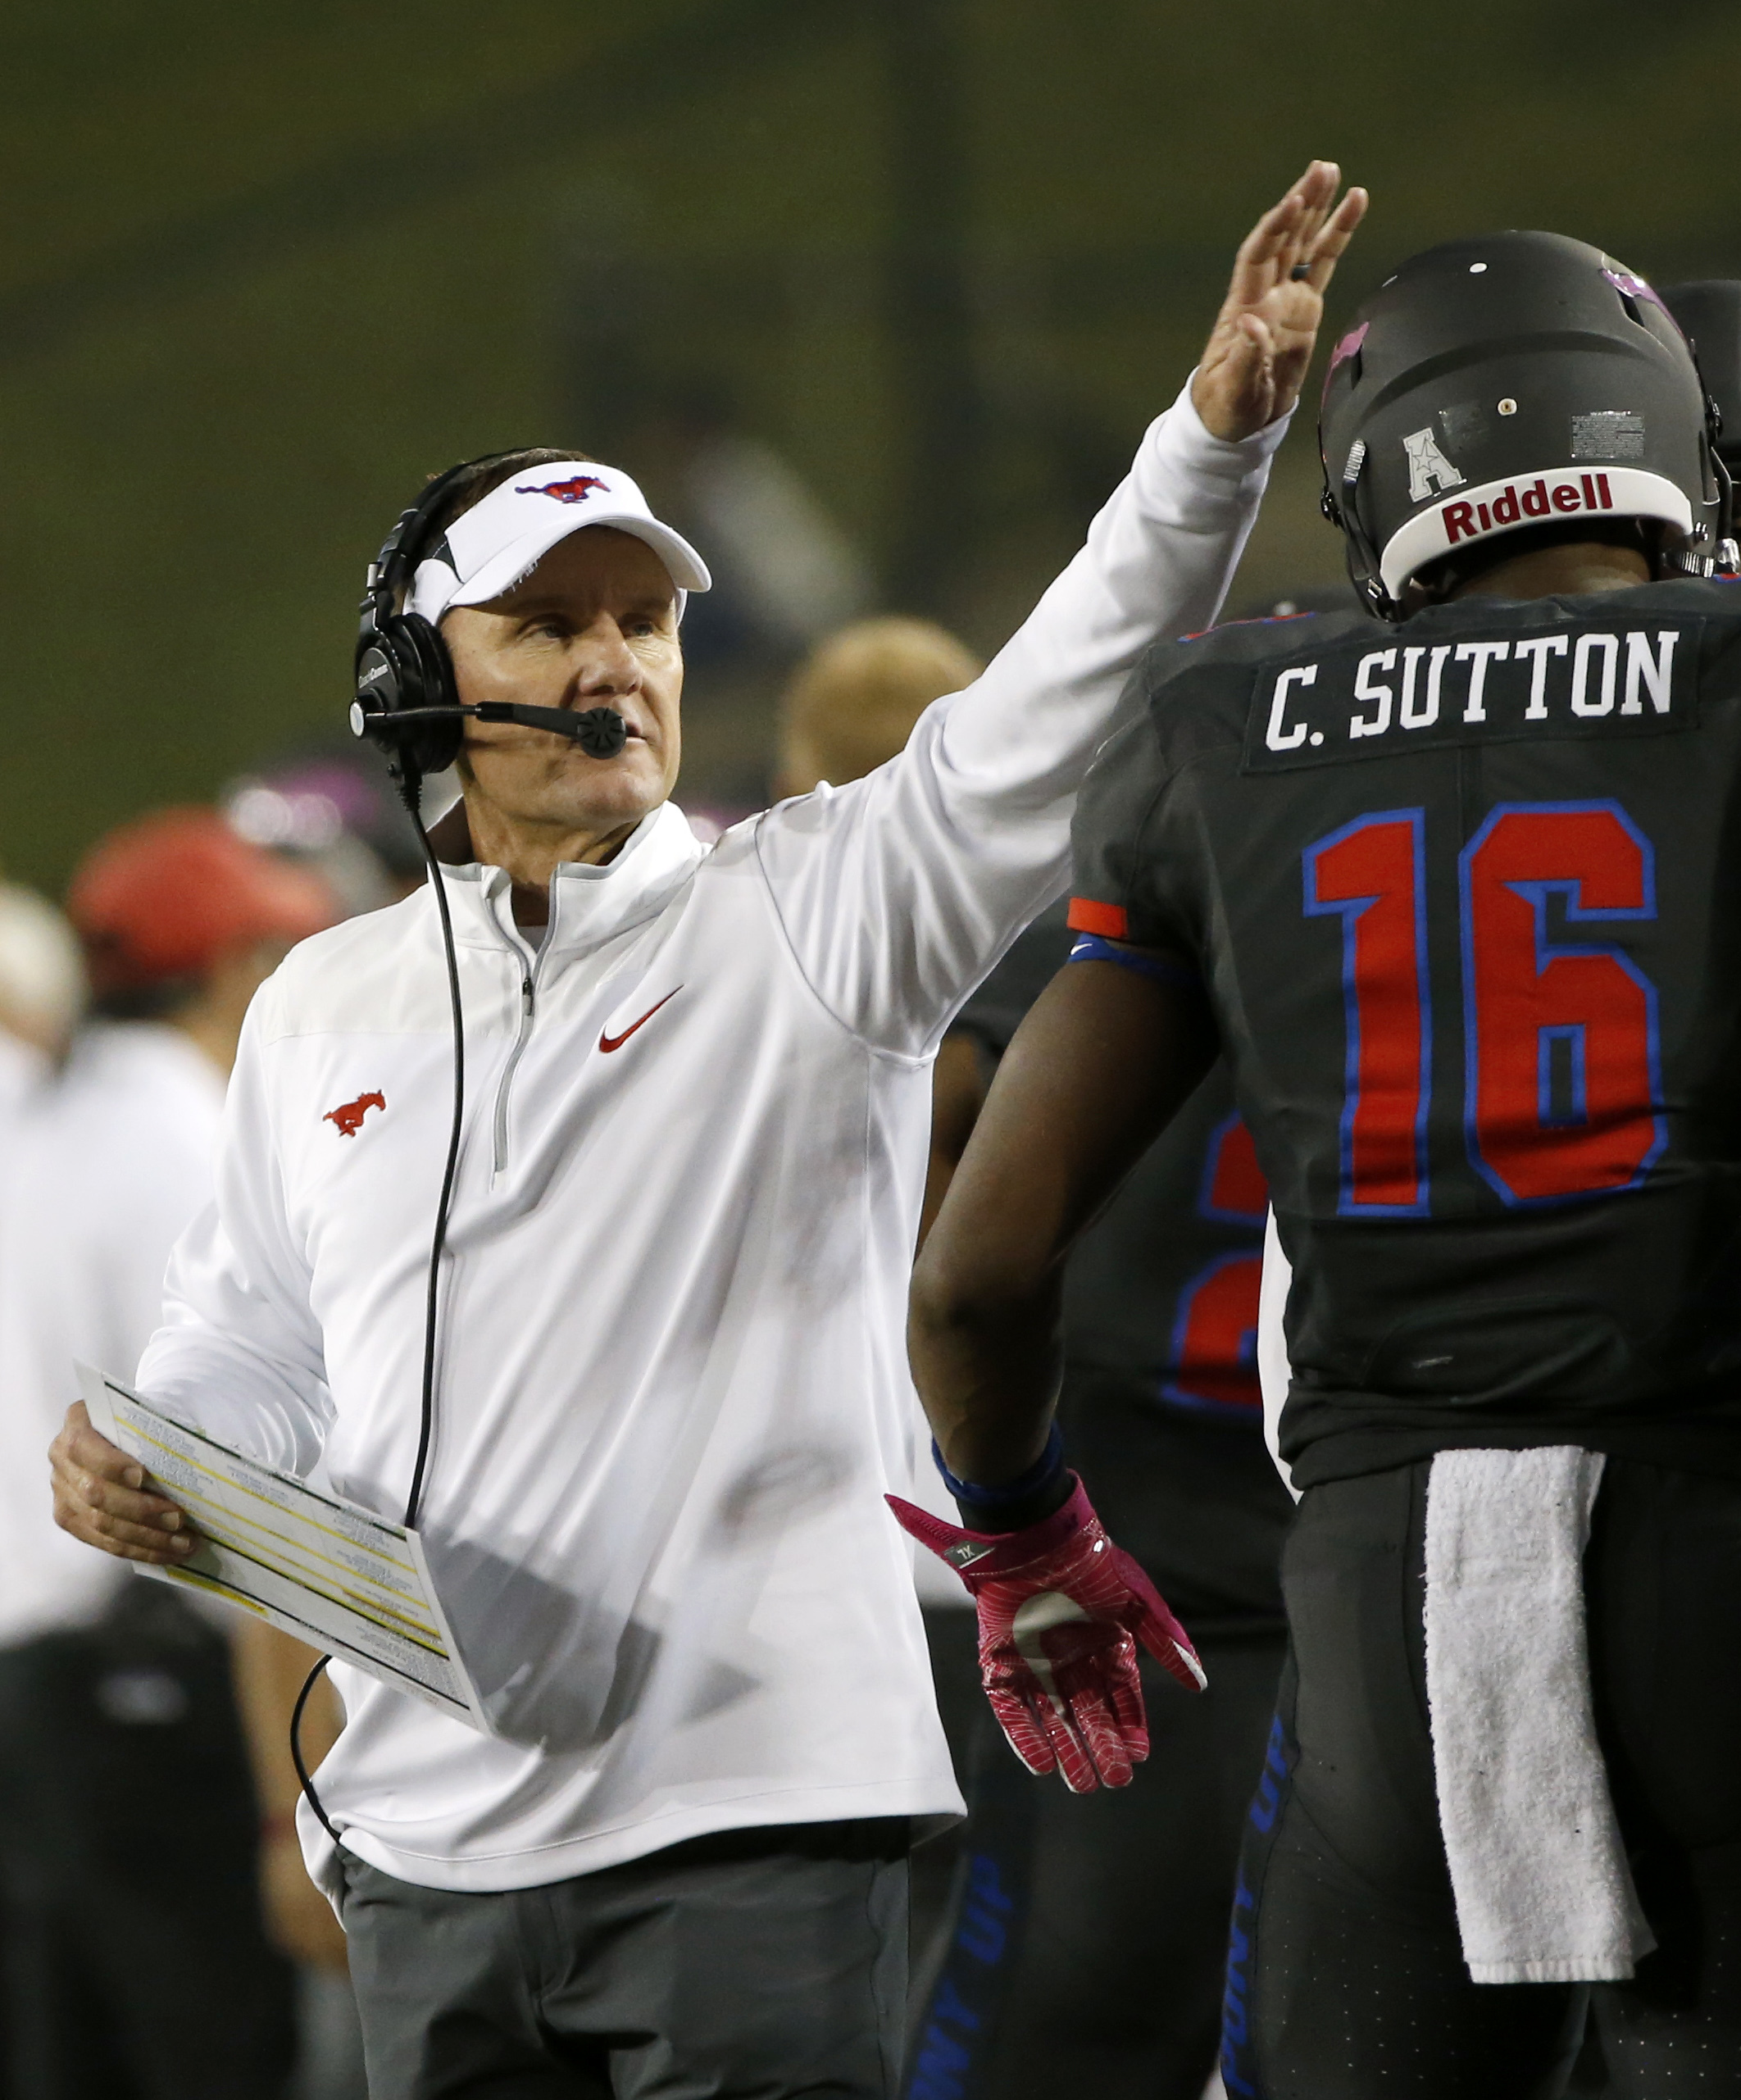 SMU coach Chad Morris welcomes wide receiver Courtland Sutton (16) back to the sideline after Sutton caught a touchdown pass against Houston during the first half of an NCAA college football game, Saturday, Oct. 22, 2016, in Dallas. (AP Photo/Ron Jenkins)